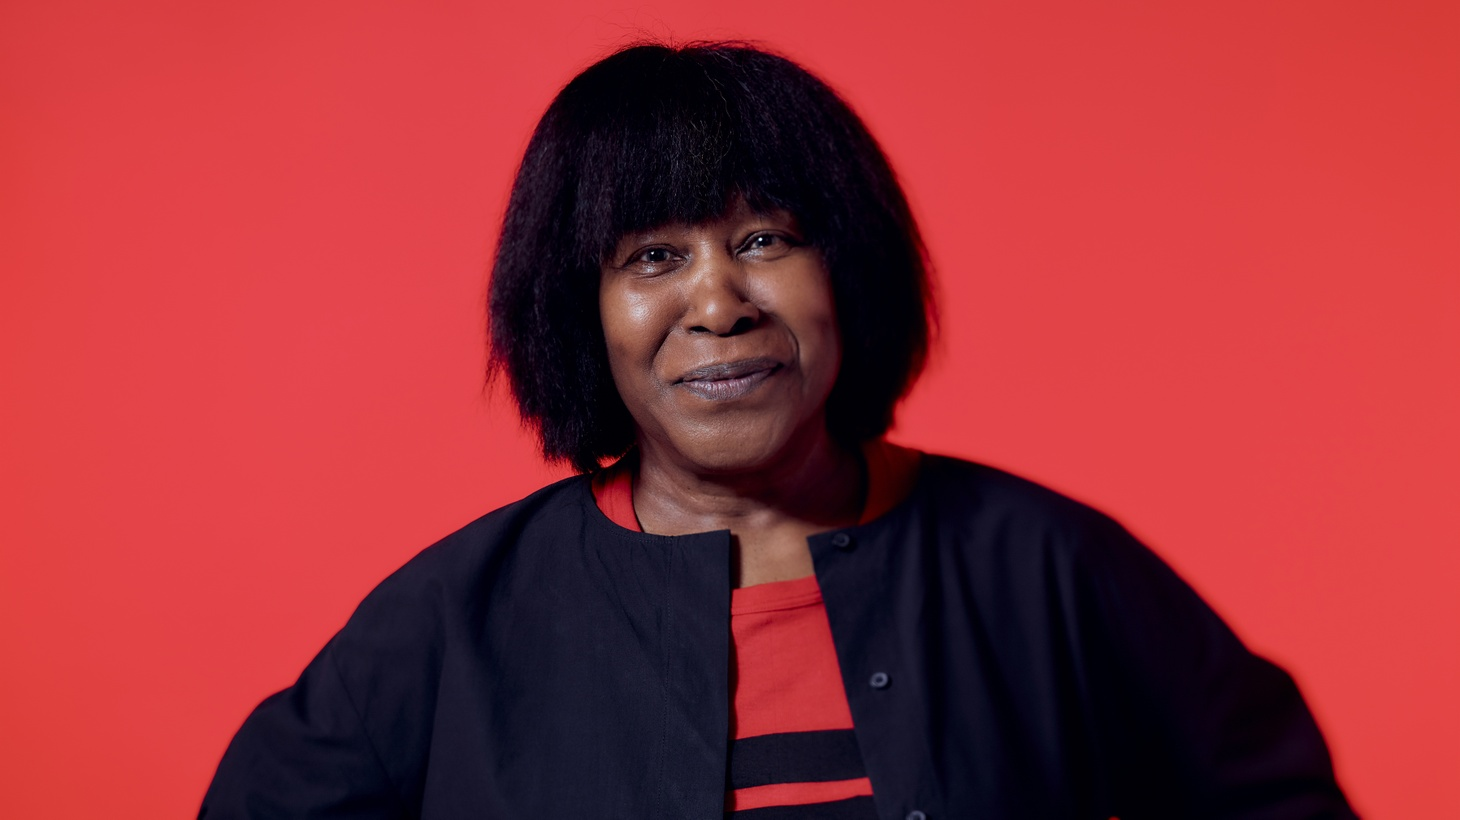 Joan Armatrading's is the first female singer/songwriter out of the U.K. to receive international success via her recordings.